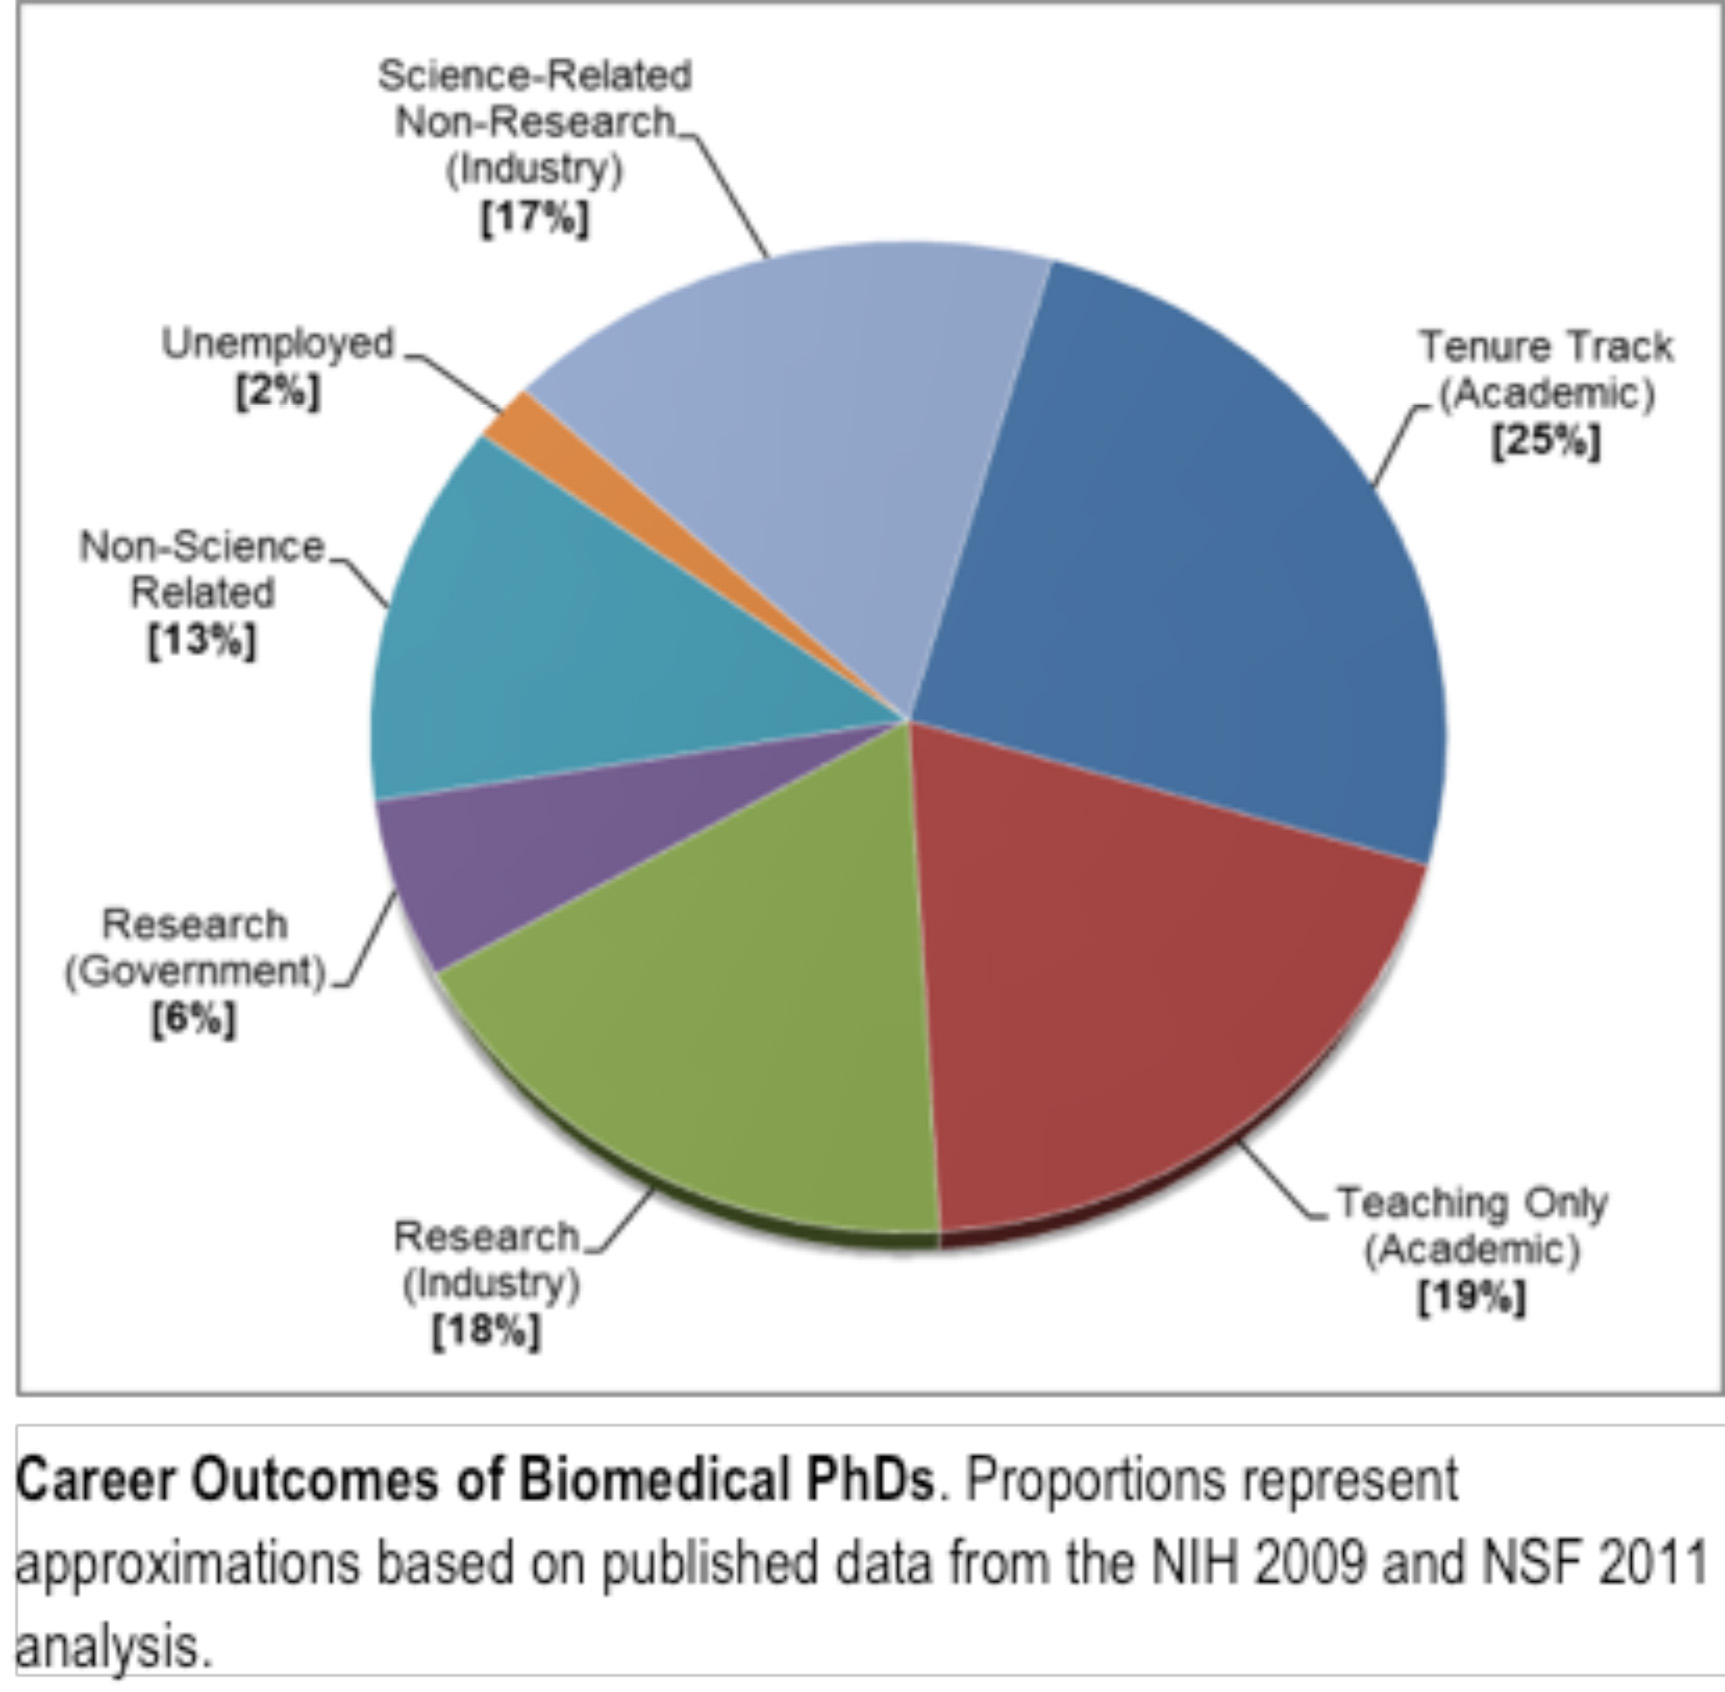 pie chart careers